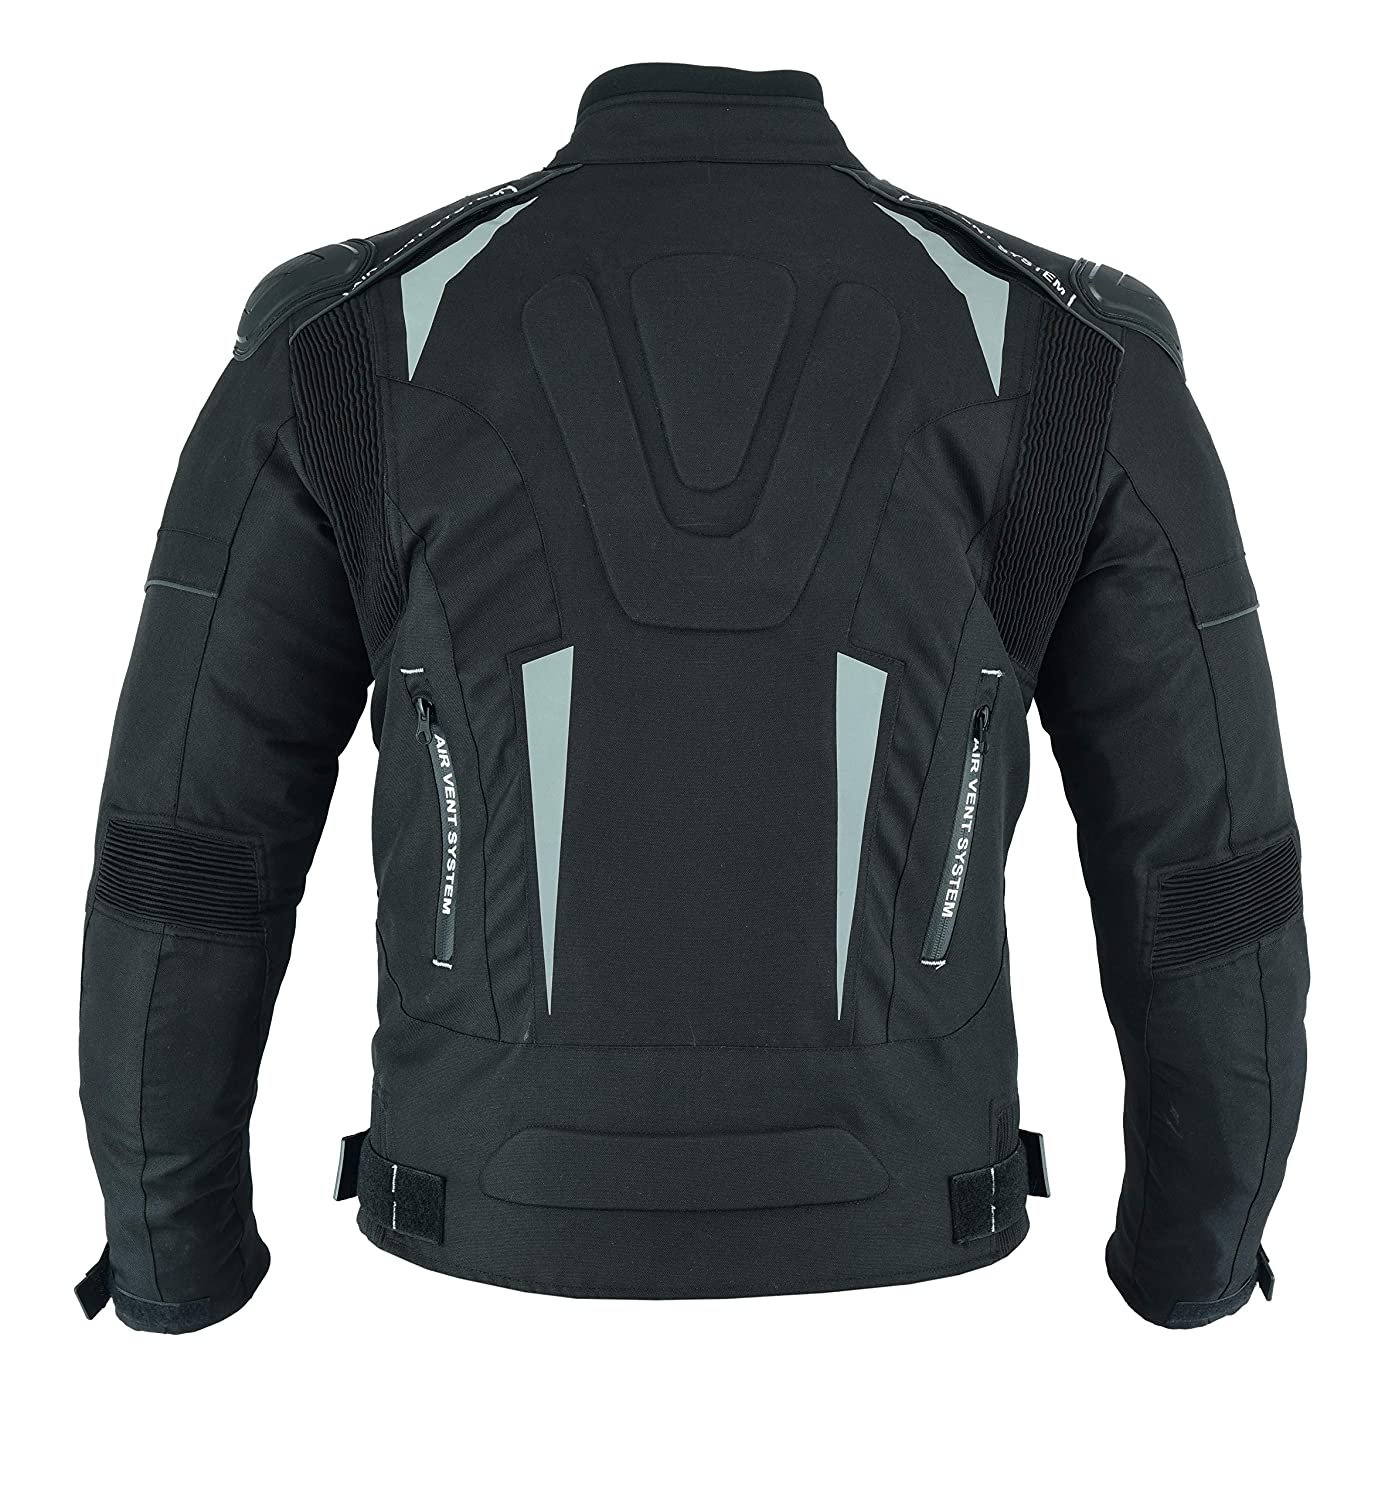 3XL MOTORCYCLE ARMOURED HIGH PROTECTION CORDURA WATERPROOF JACKET BLACK WITH 7 ARMOUR CJ-9434